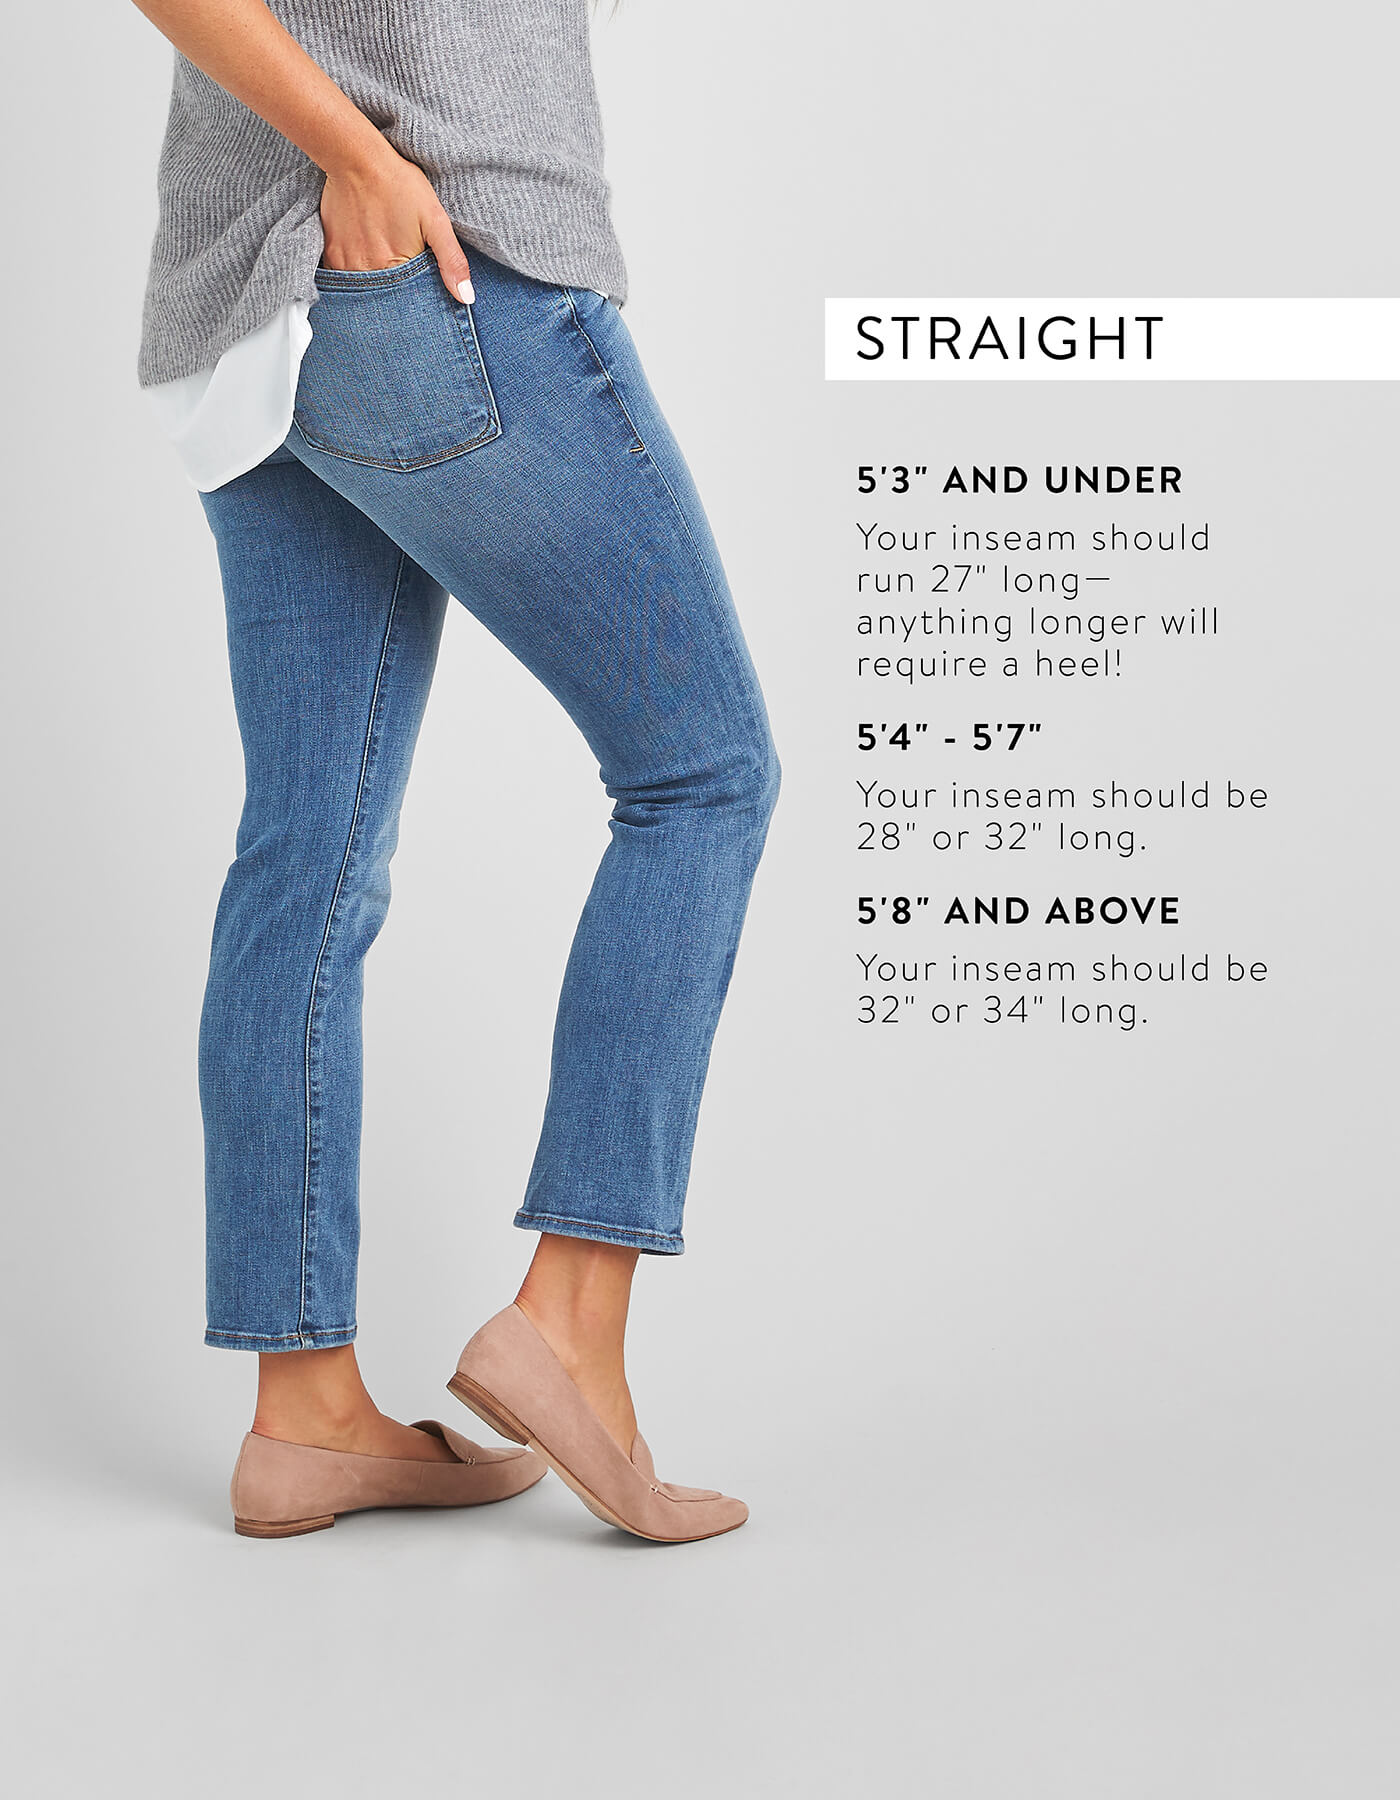 guide to denim inseams, denim inseam guide, denim inseams